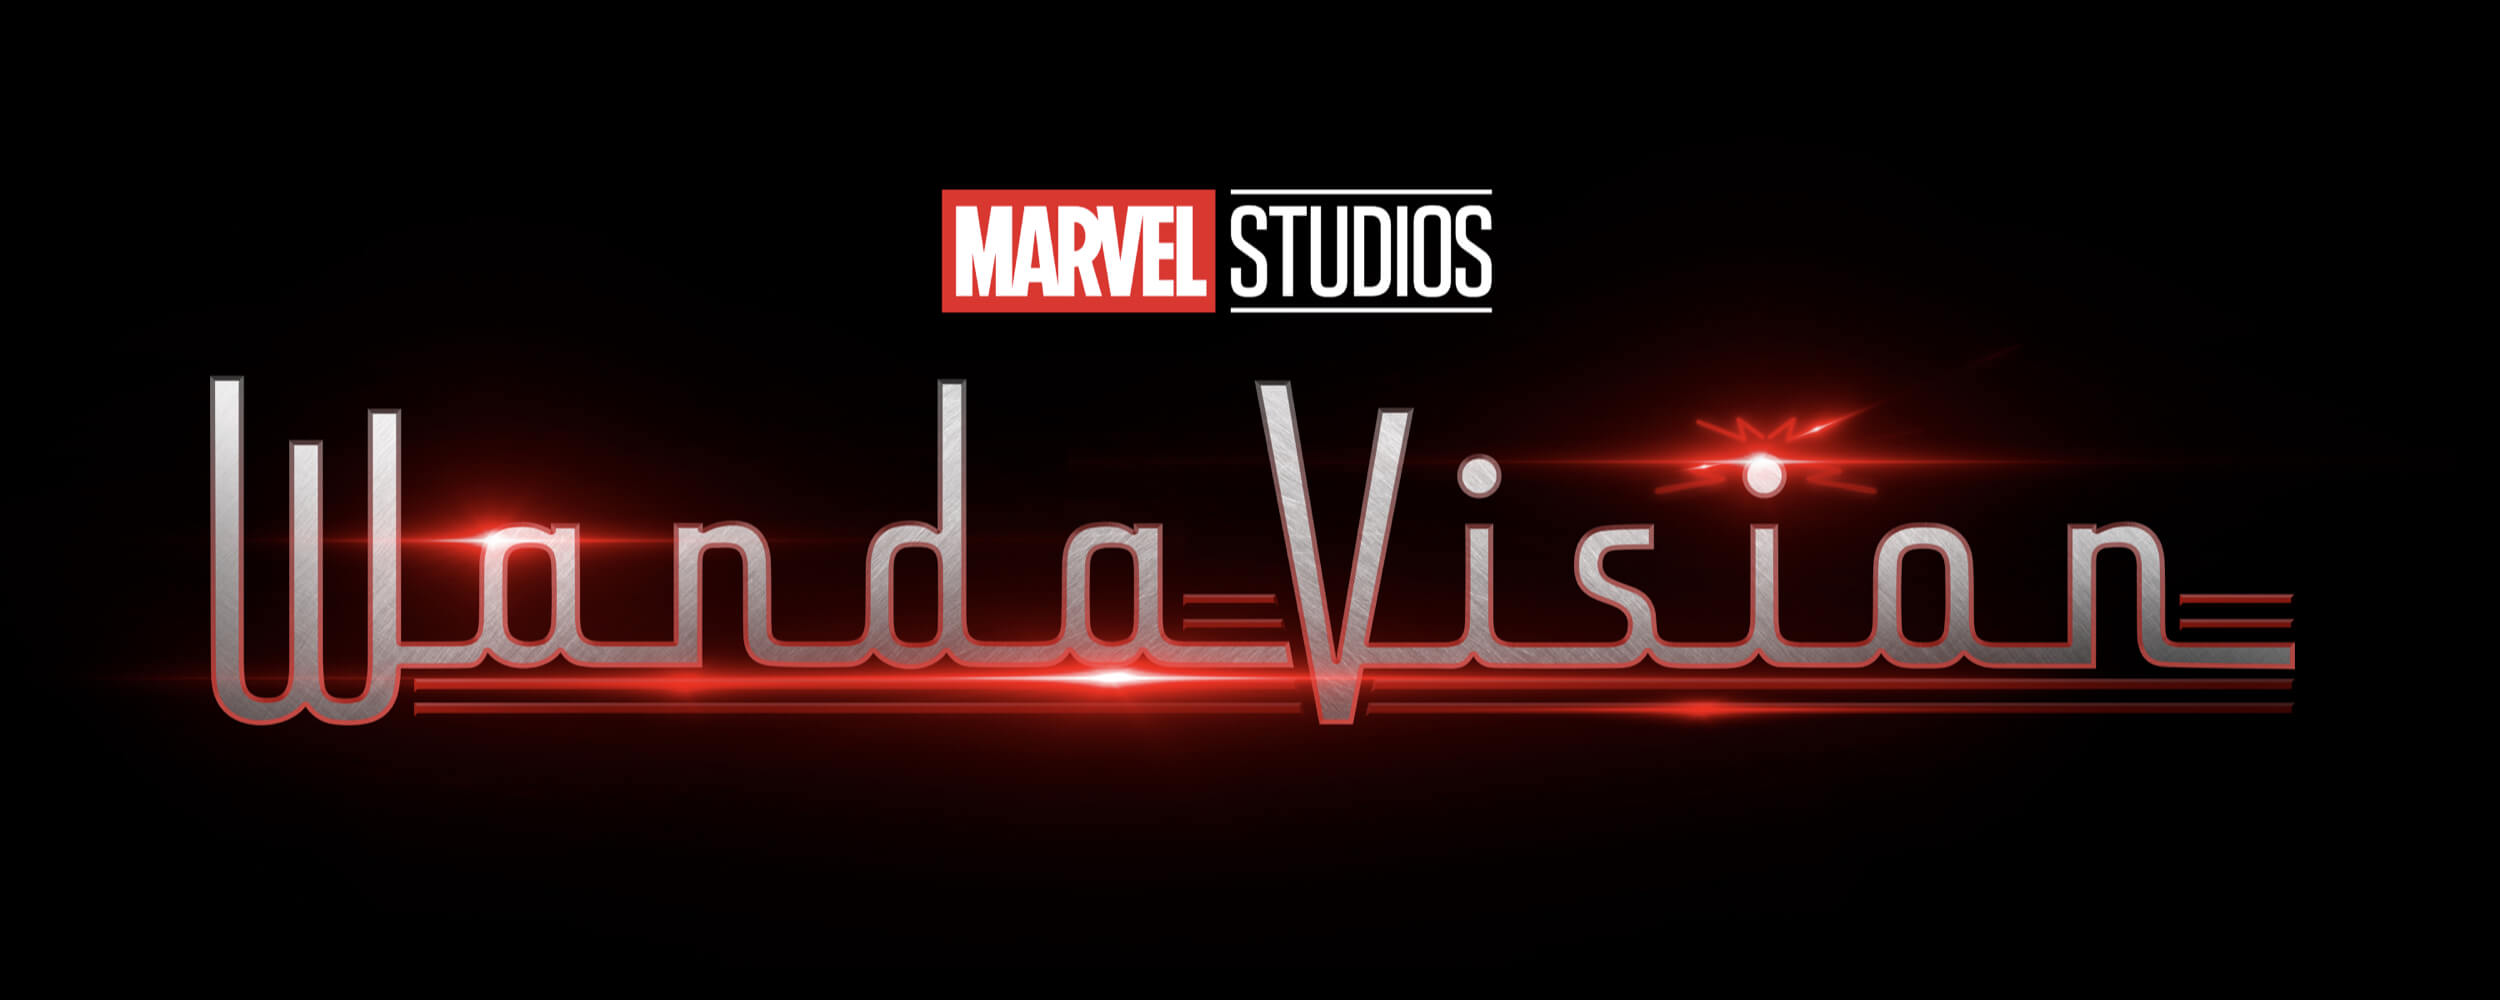 WandaVision, Marvel Studios at Disney Plus, 2021